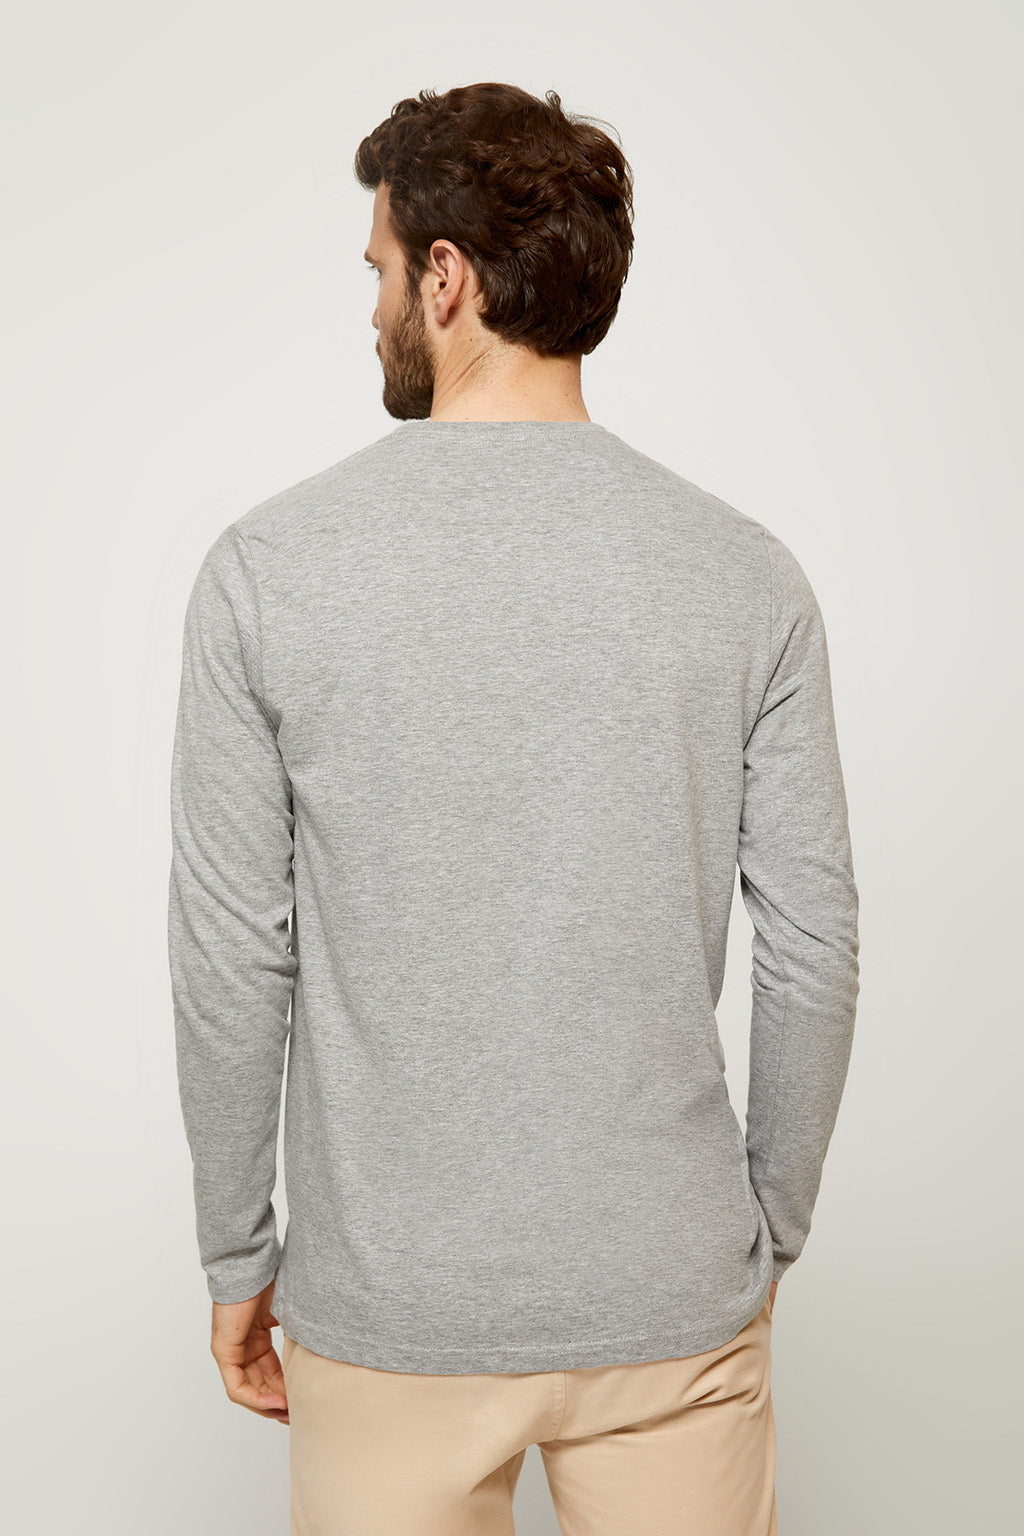 Grey long sleeve tee with embroidered logo